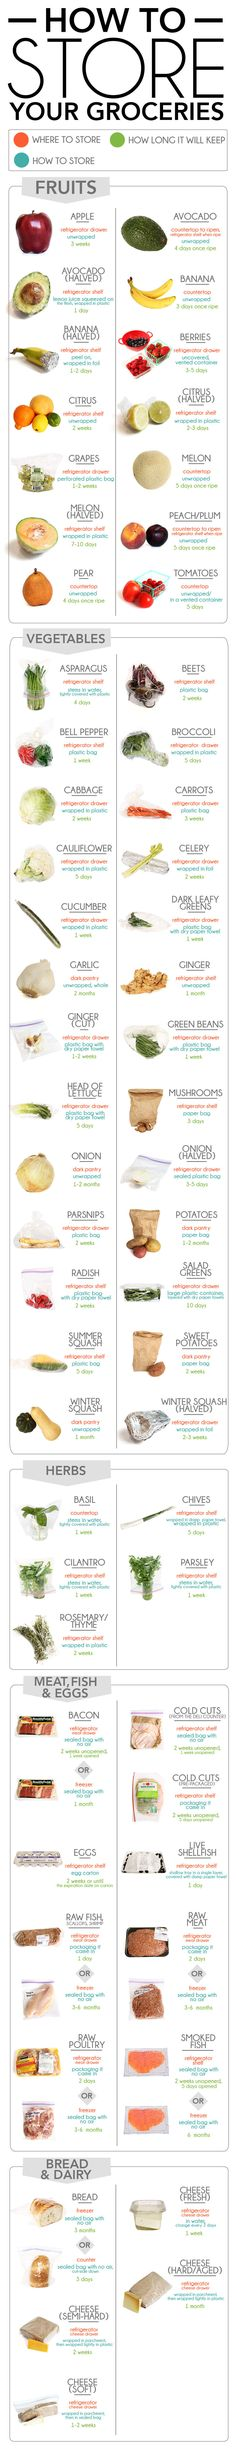 How To Store Your Groceries #clean #recipe #eatclean #healthy #recipes